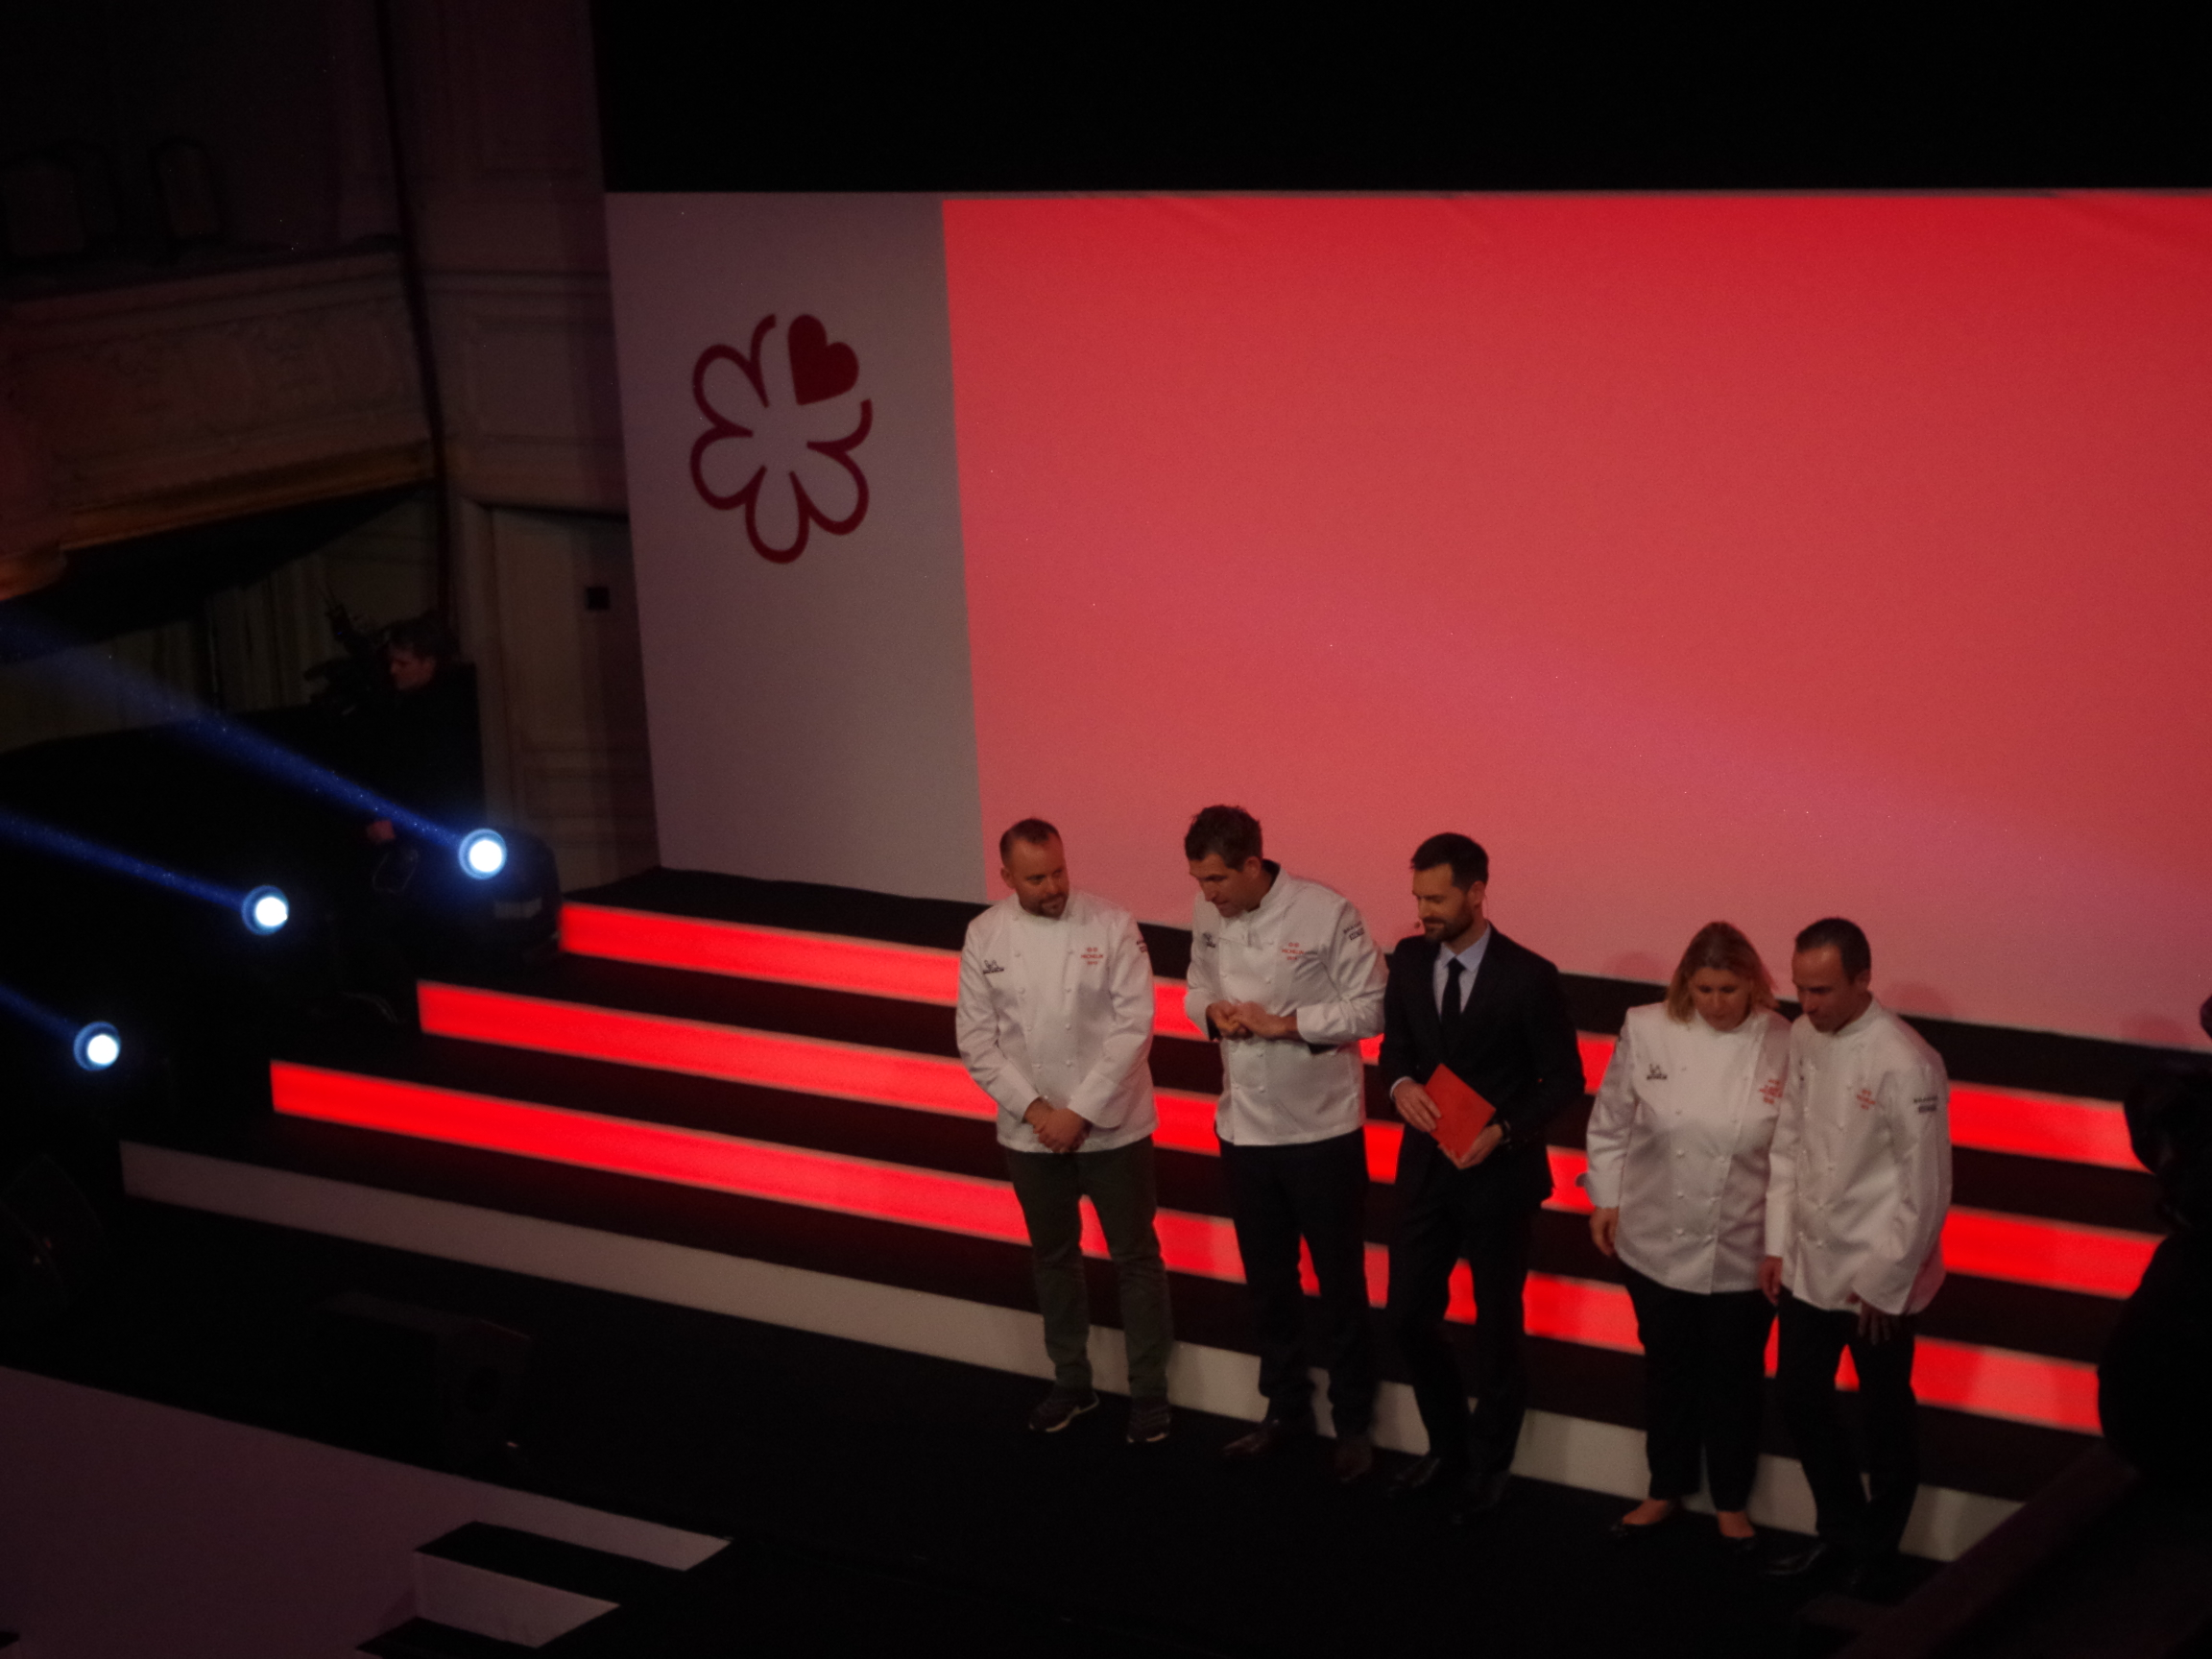 michelin 2 star chef 2019 ceremony winners paris.jpg